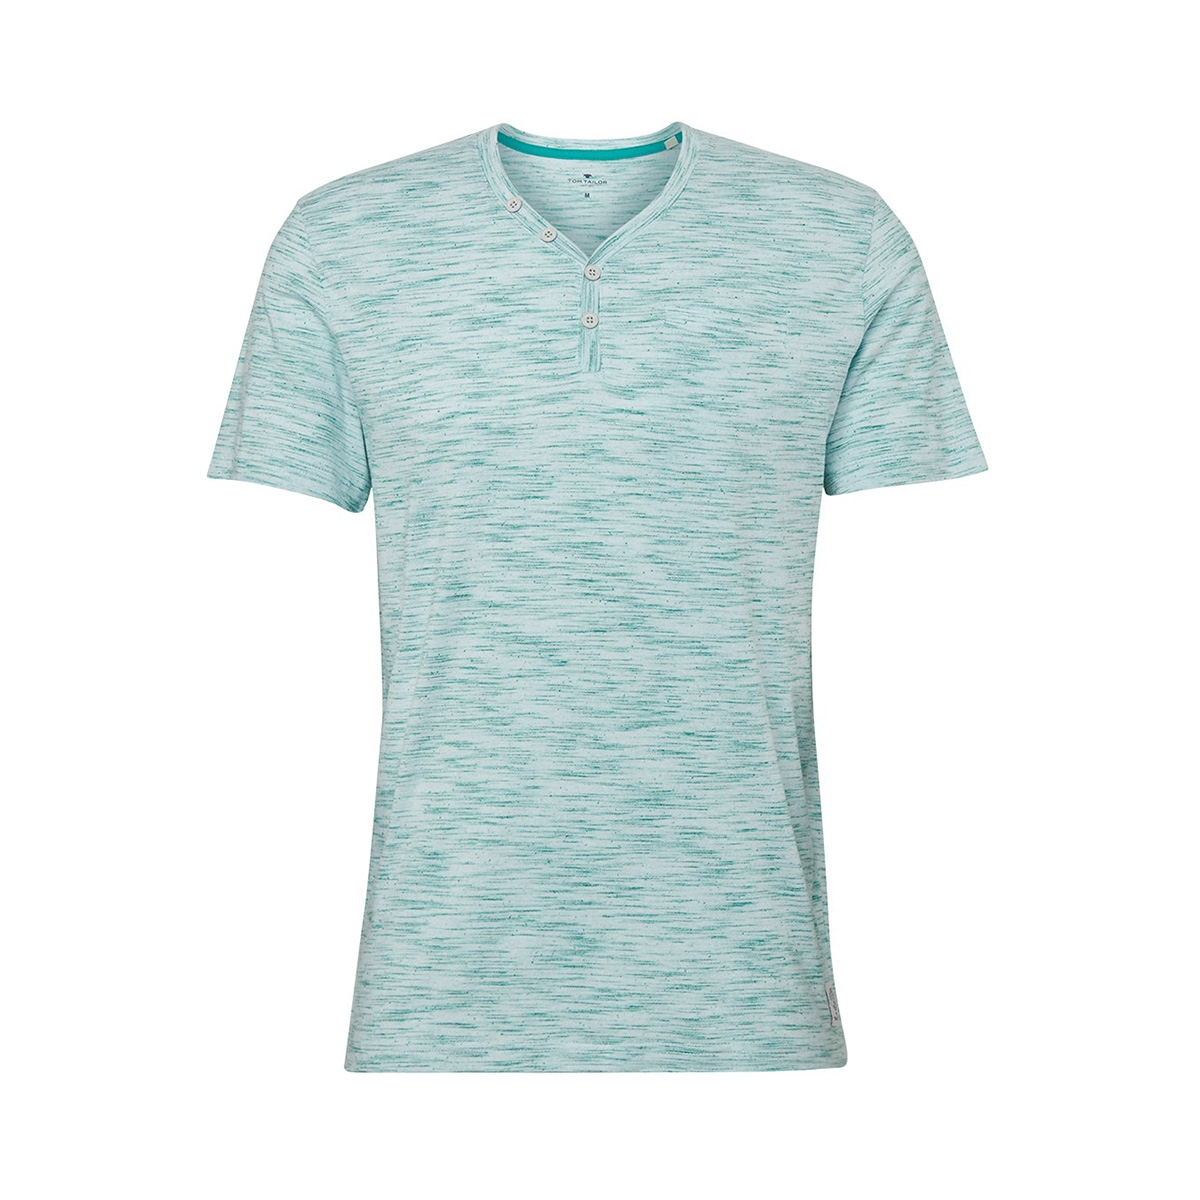 henley shirt met melange look 1011540xx10 tom tailor t-shirt 17957